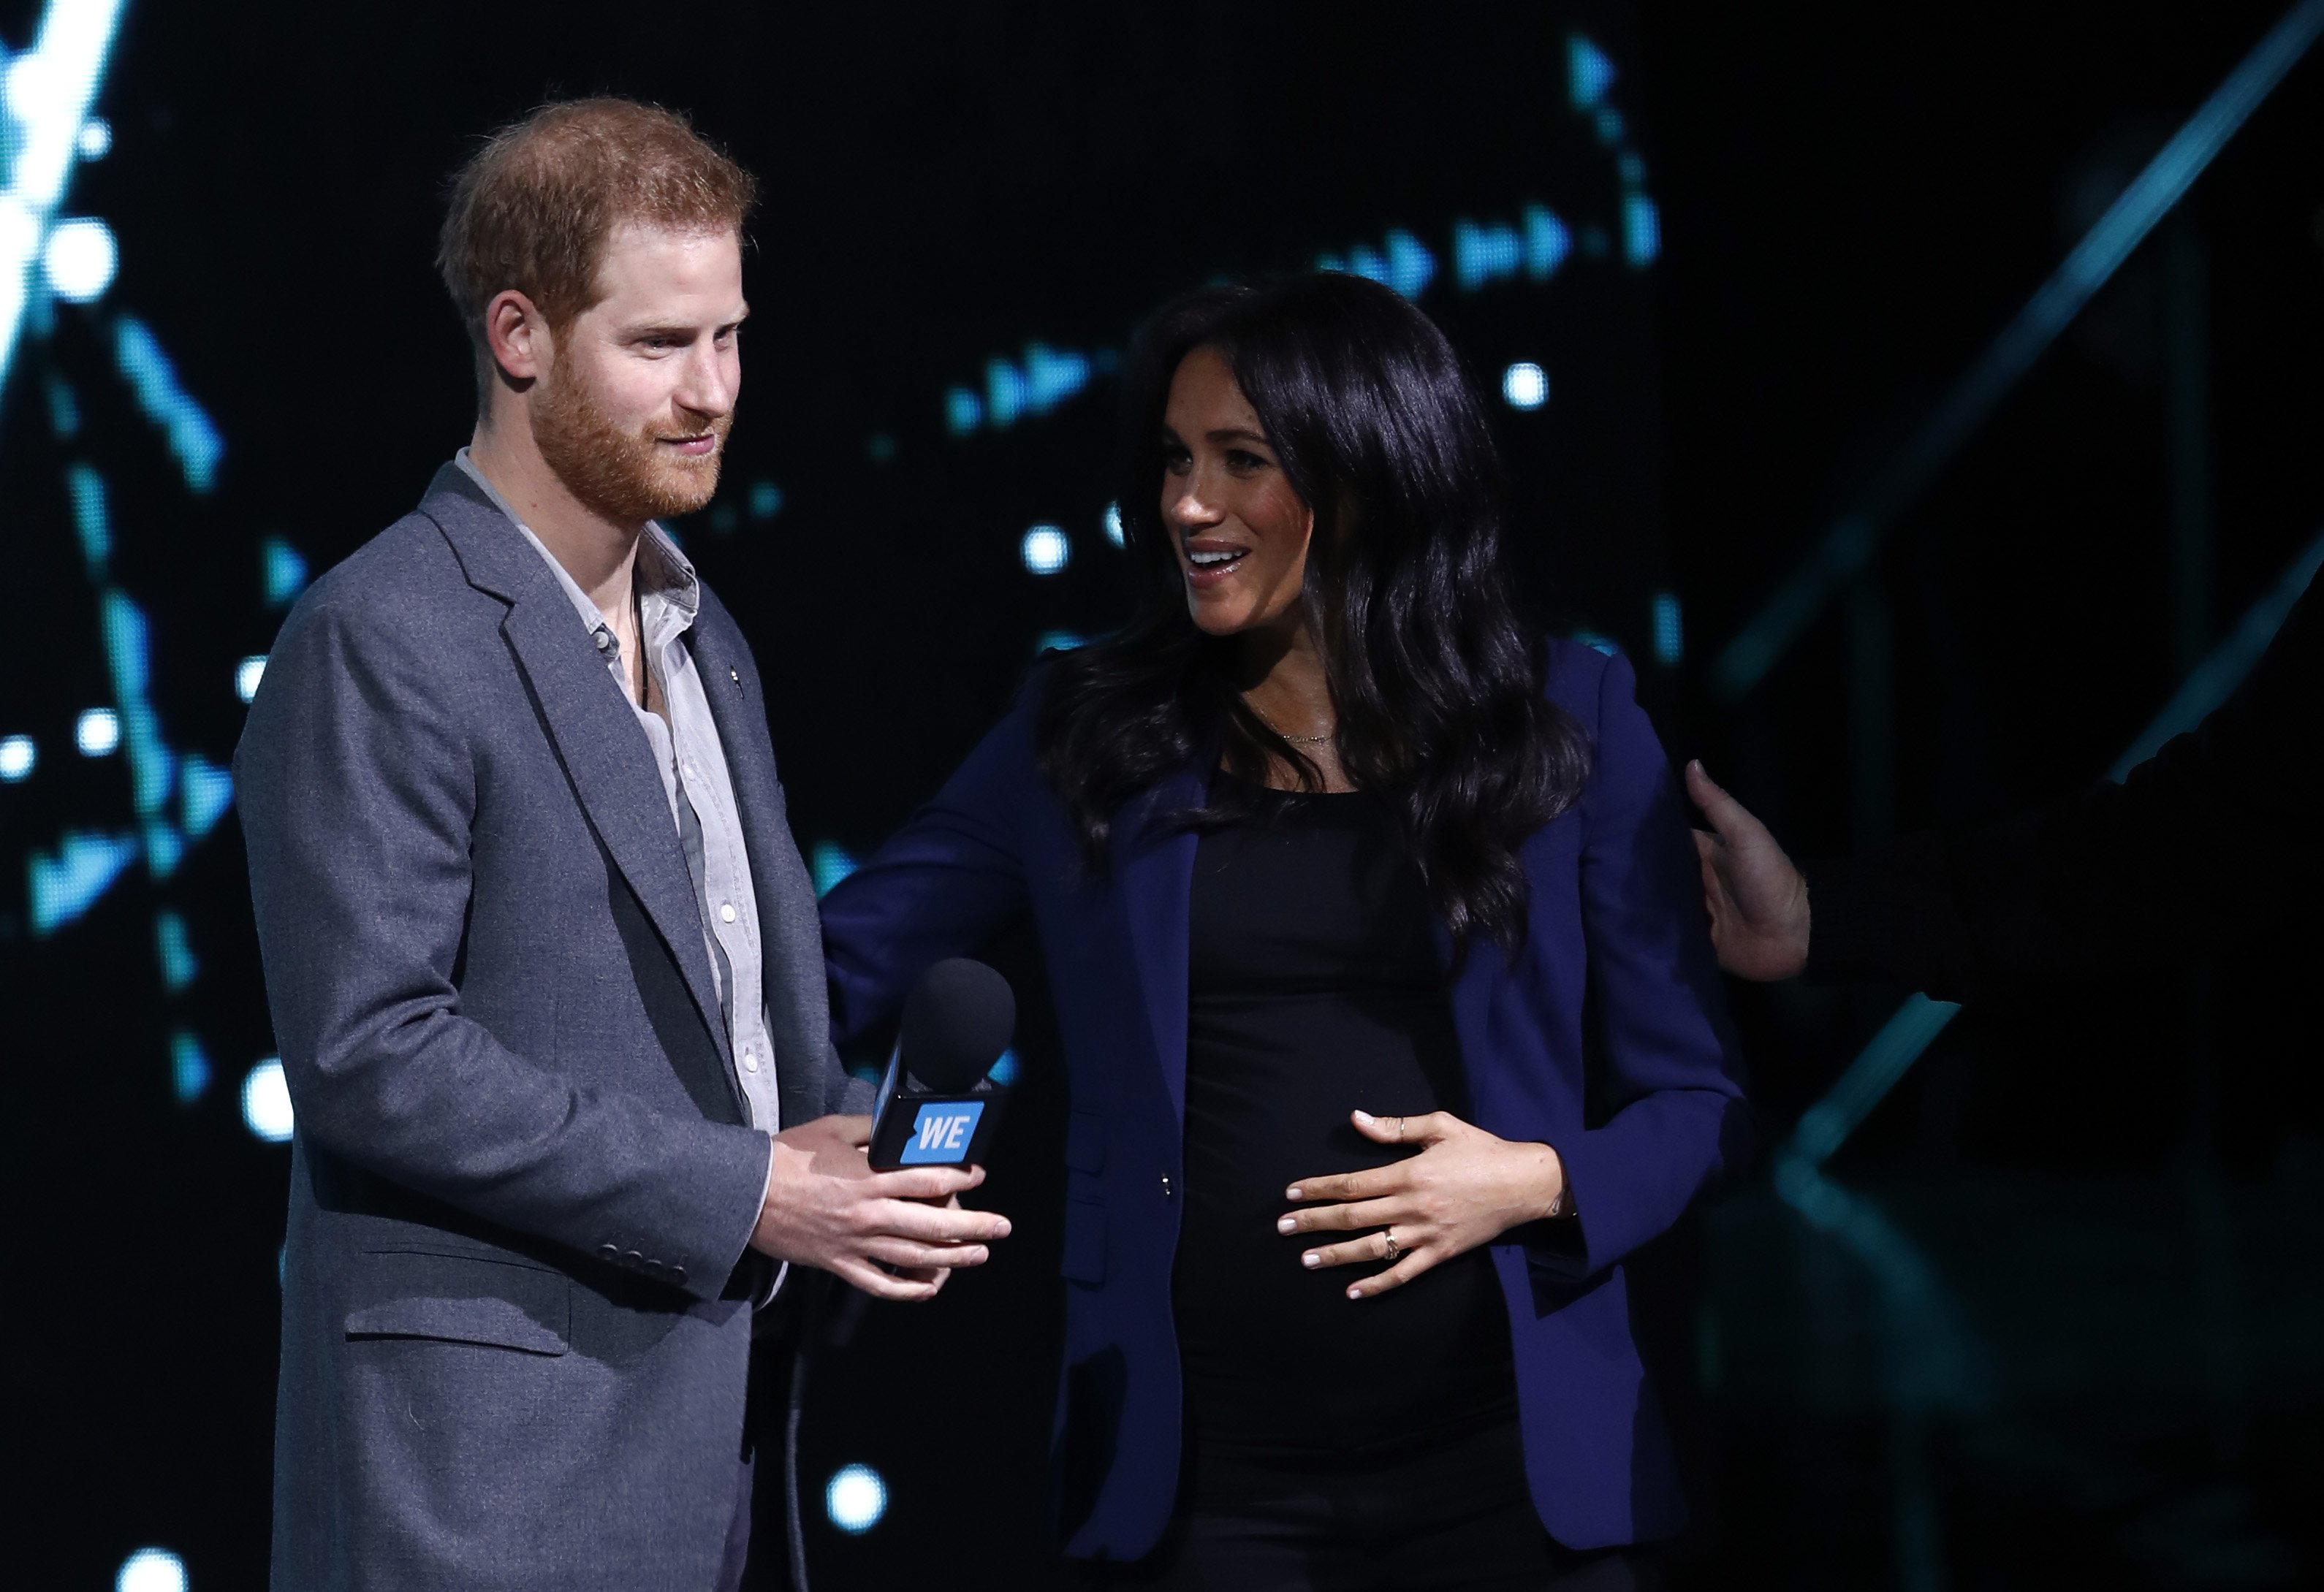 Prince Harry and Meghan Markle onstage at the WE Day UK event in March 2019 | Photo: Getty Images